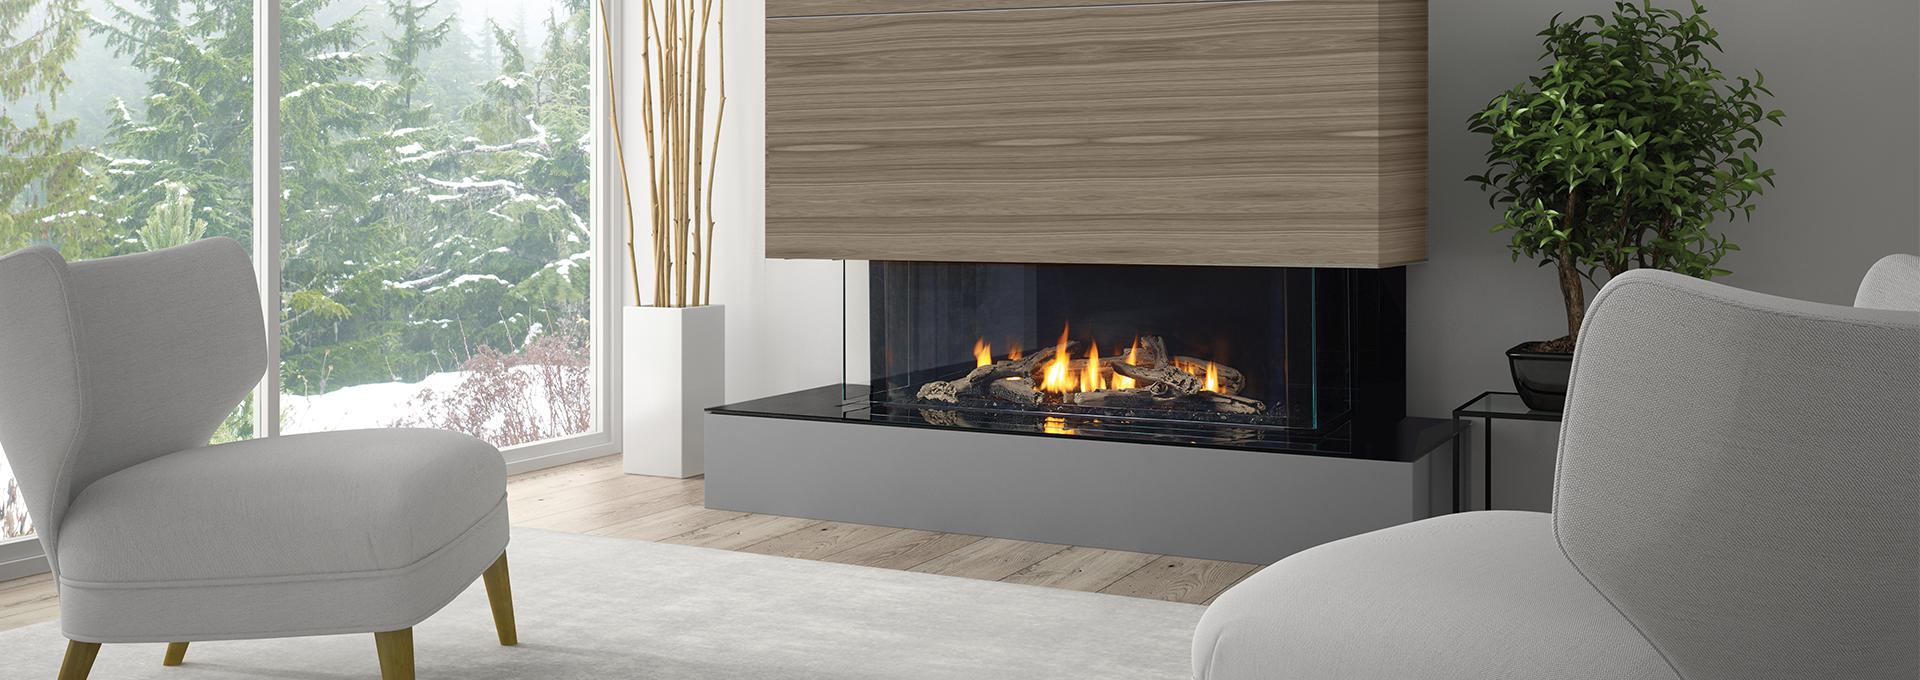 Regency City Series San Francisco Bay 40 Modern Gas Fireplace  Toronto Best Price